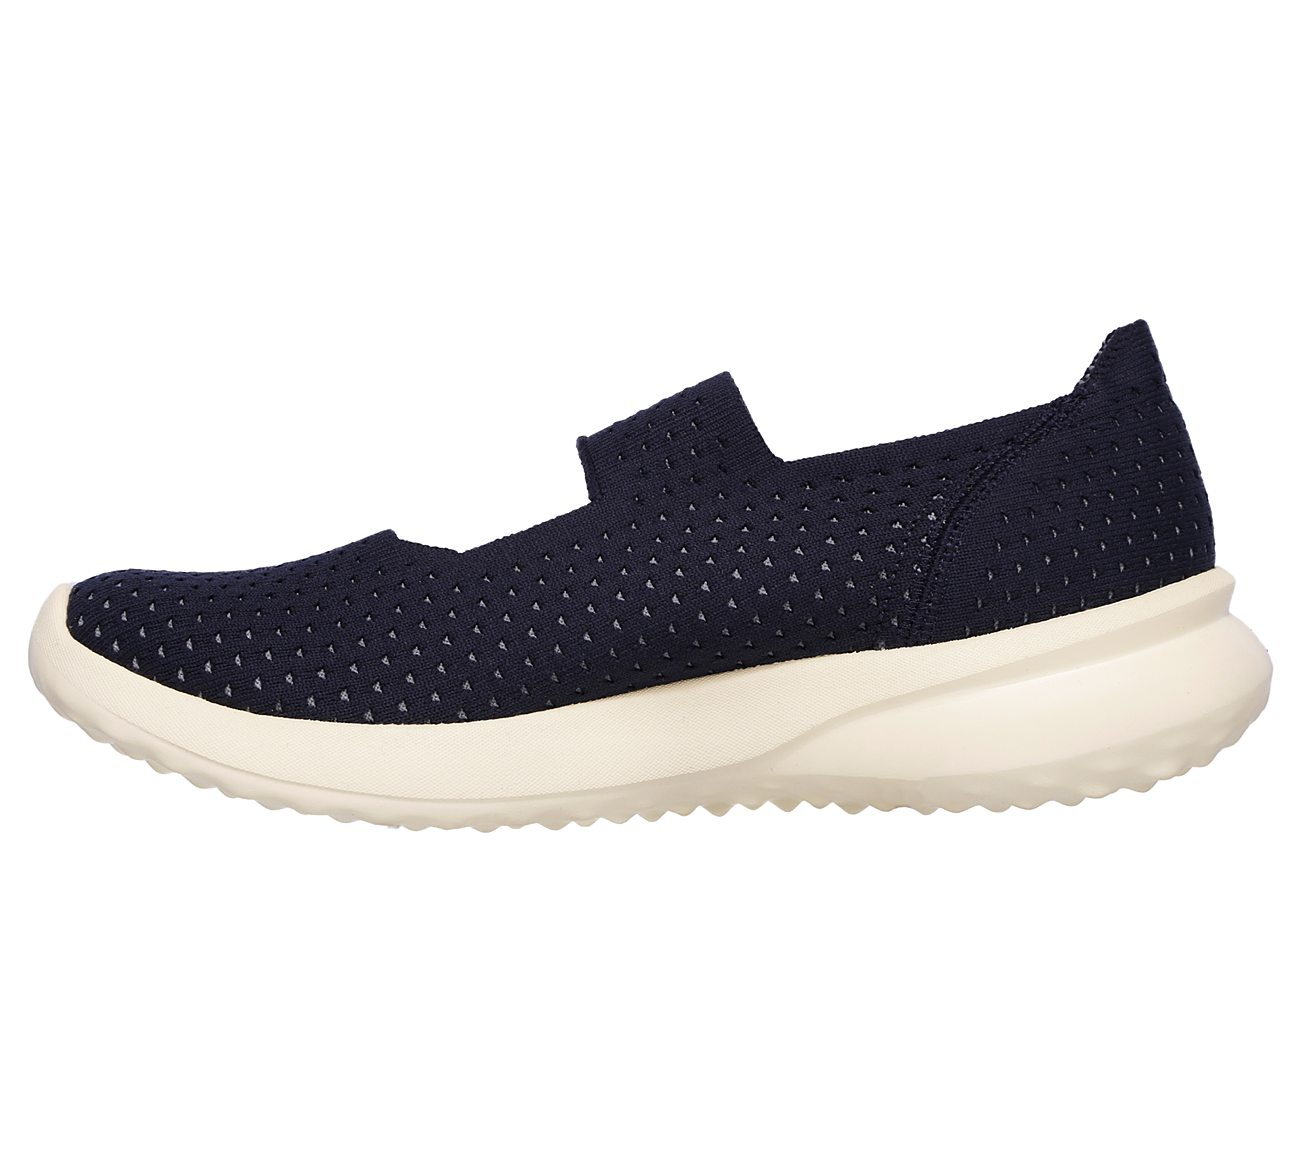 Skechers On the GO City 3.0 Lively